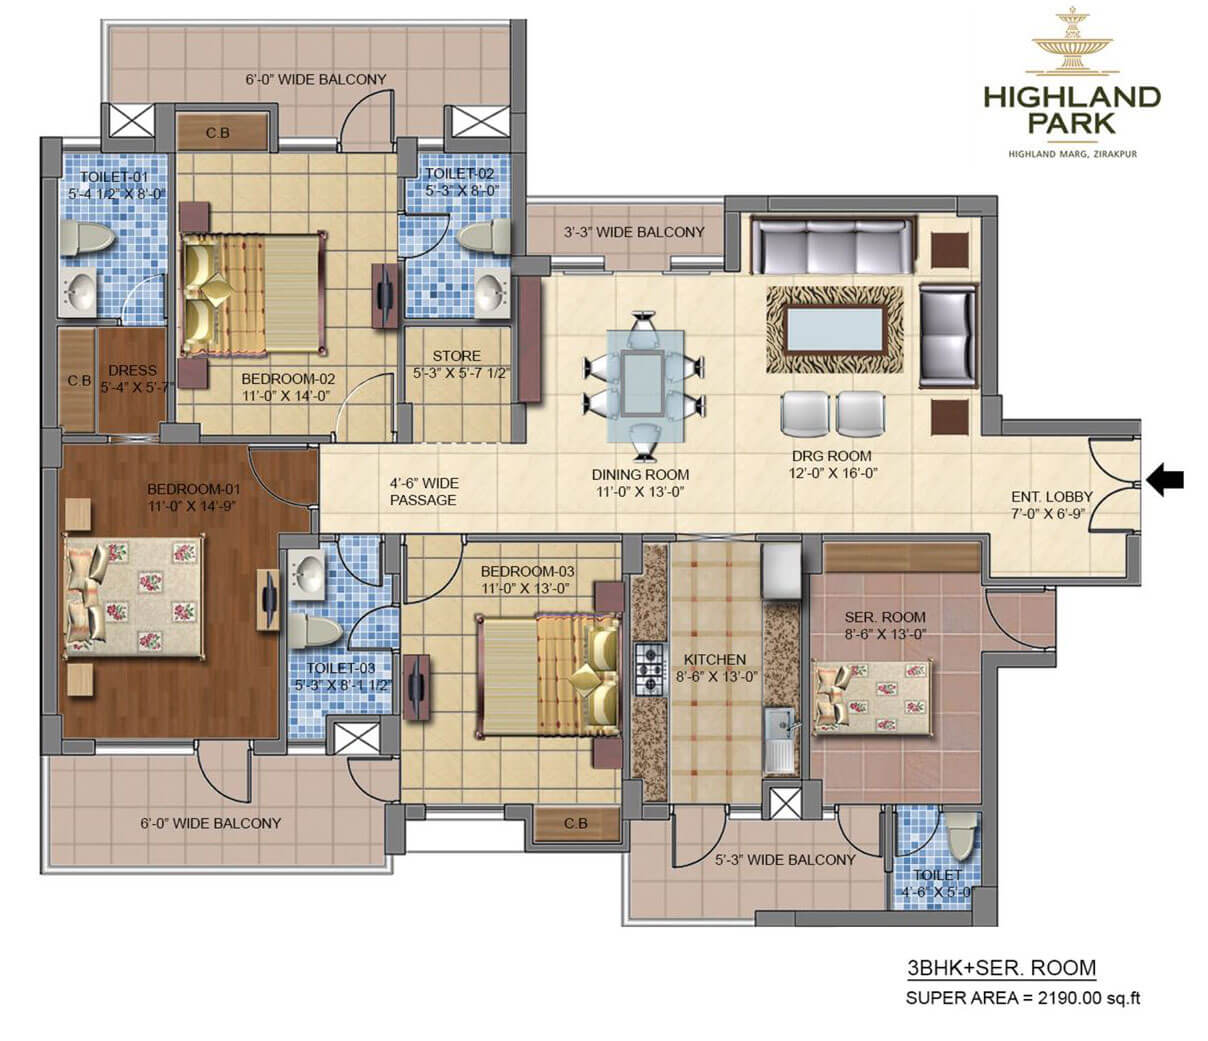 4 Bhk Luxury Flats In Zirakpur Highland Park Official Site